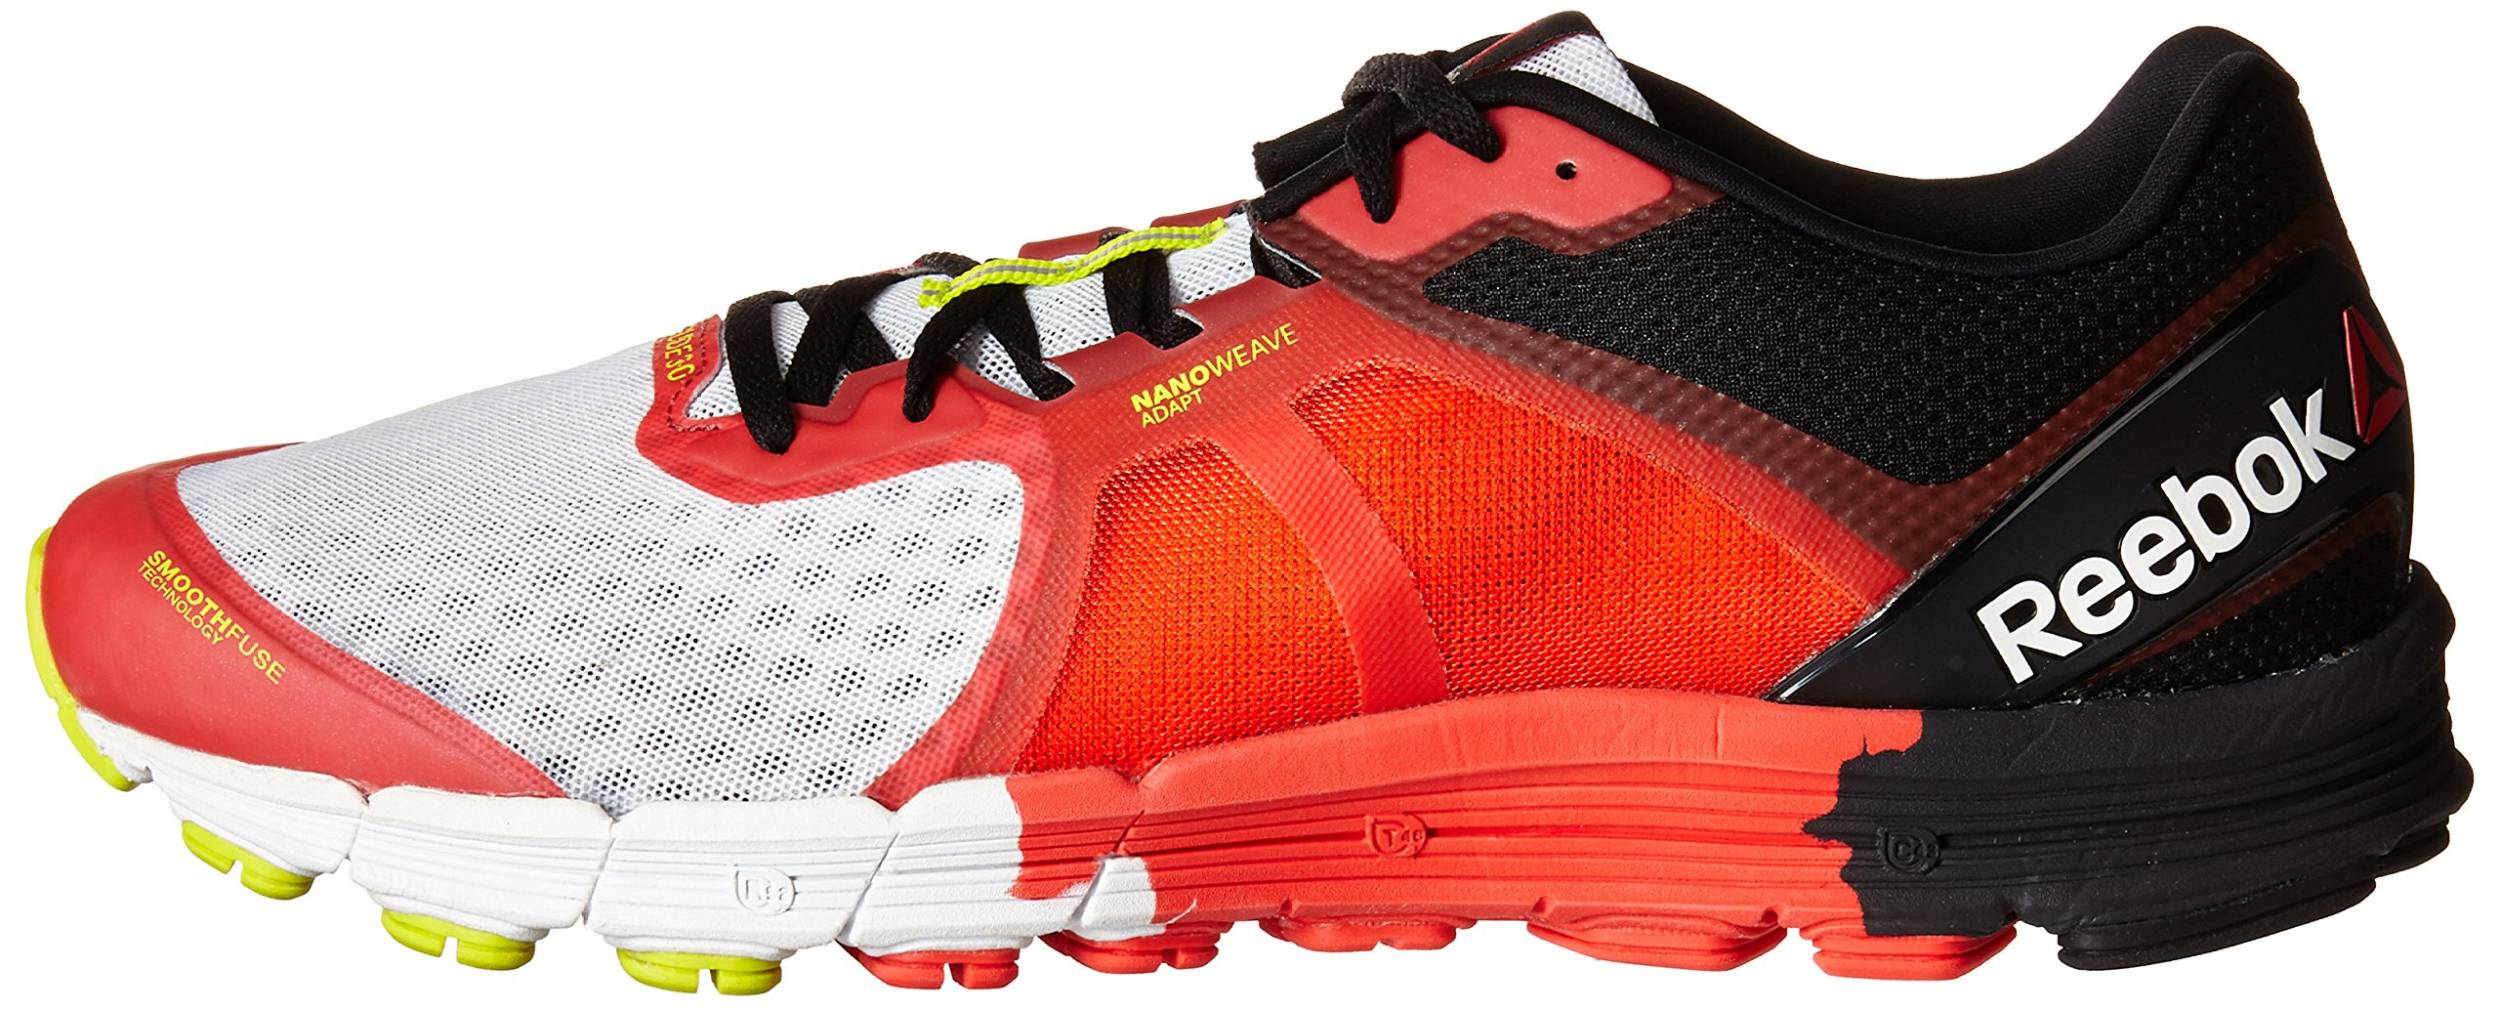 8 Reasons to/NOT to Buy Reebok One Guide 3.0 (Aug 2020)   RunRepeat